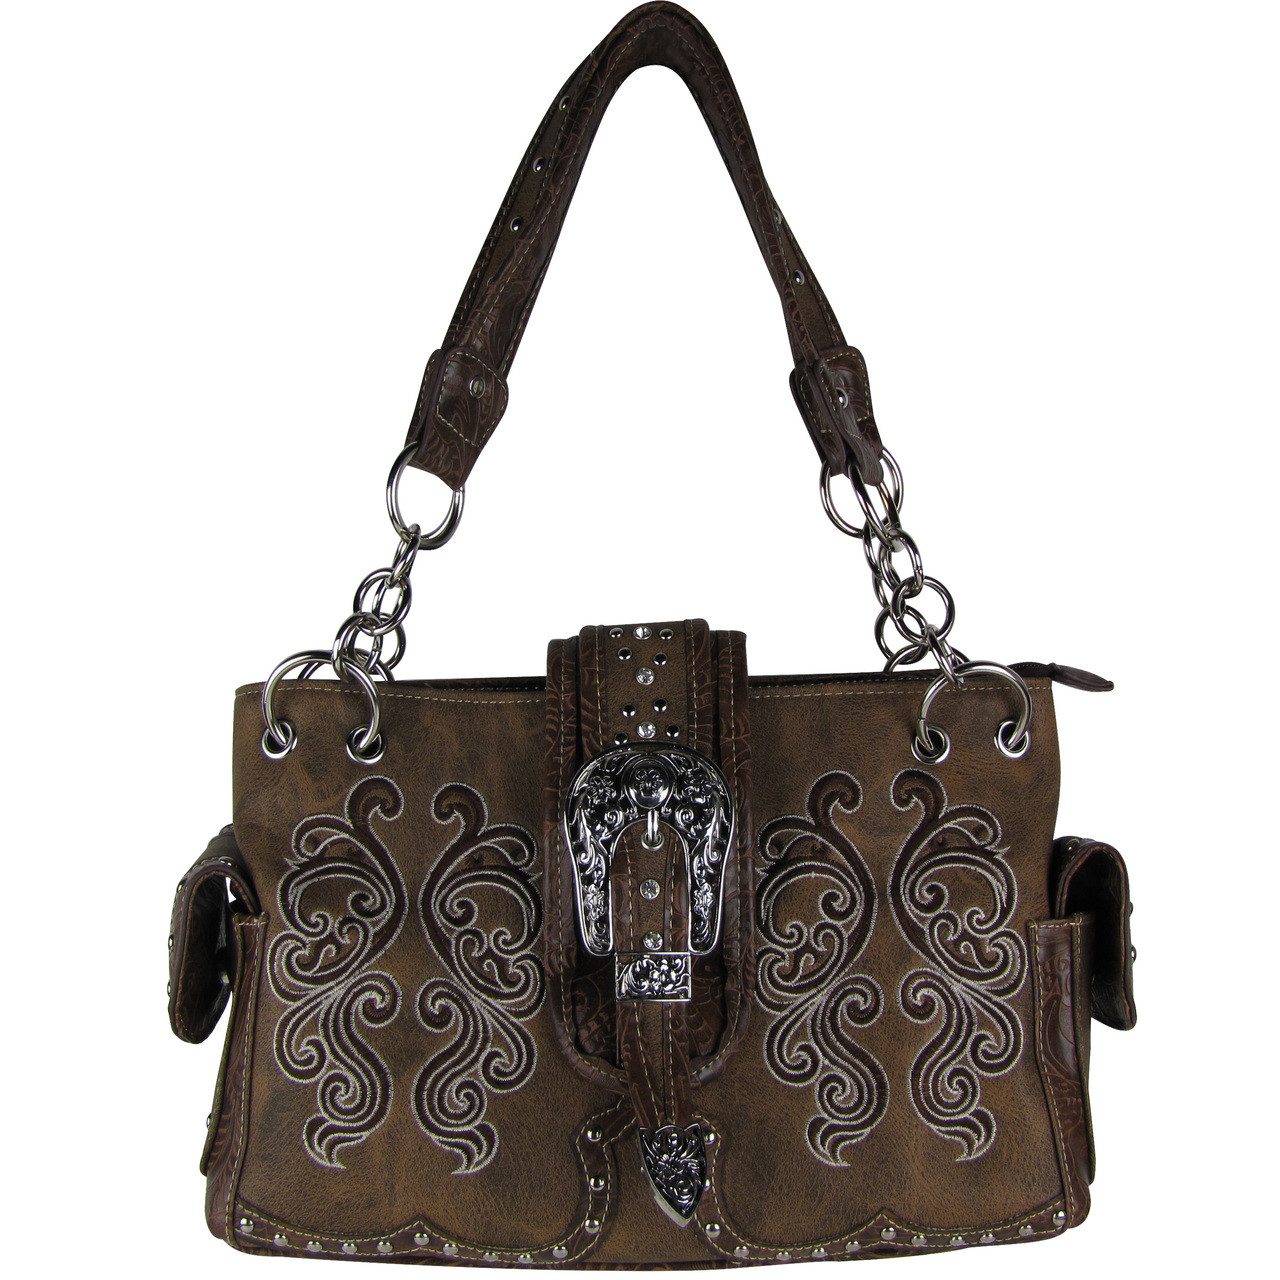 BROWN WESTERN BUCKLE LOOK SHOULDER HANDBAG HB1-39W62BRN